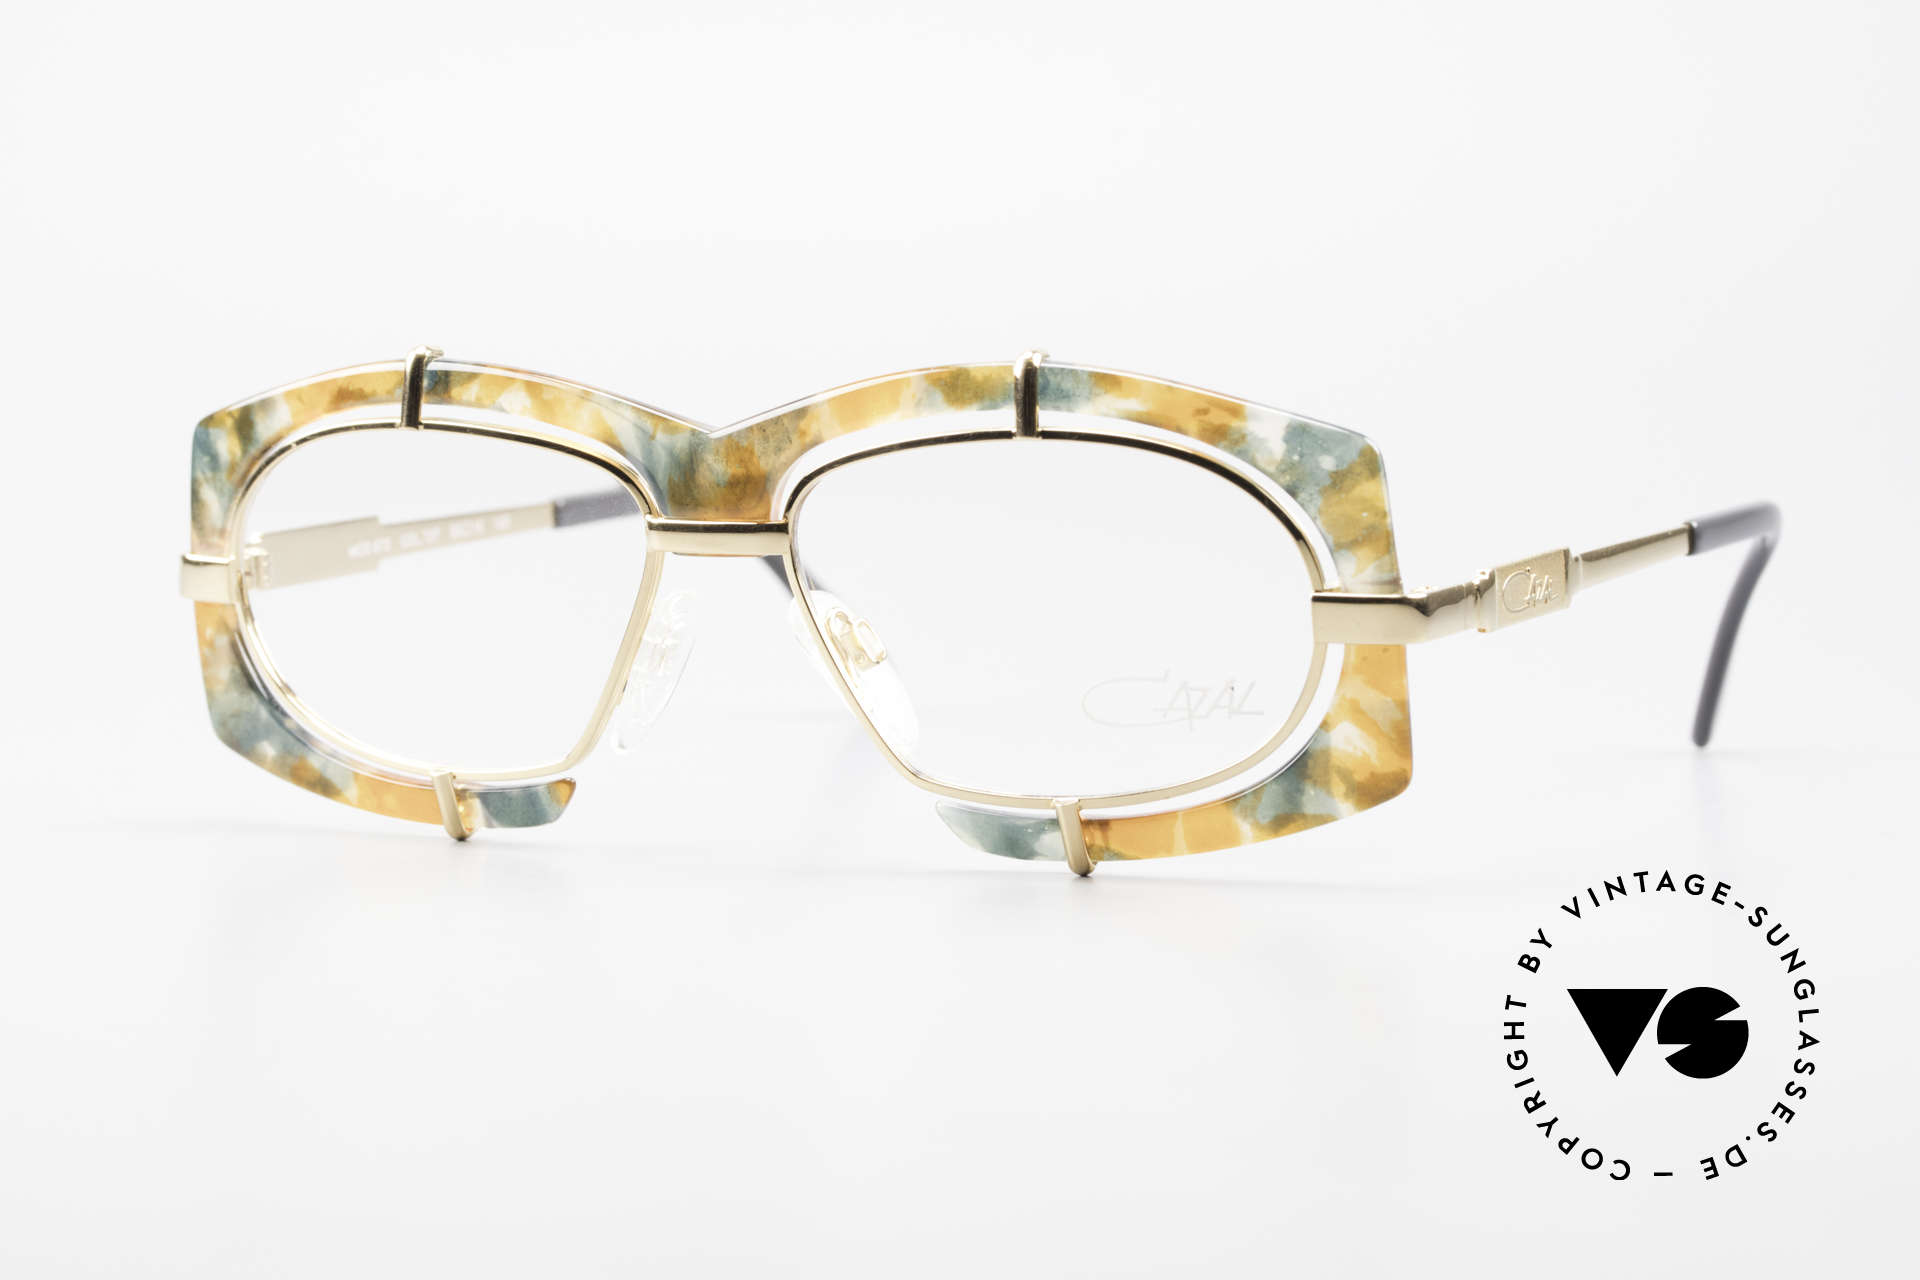 Cazal 872 Extraordinary 90's Eyeglasses, crazy CAZAL designer eyeglasses of the early 1990's, Made for Men and Women